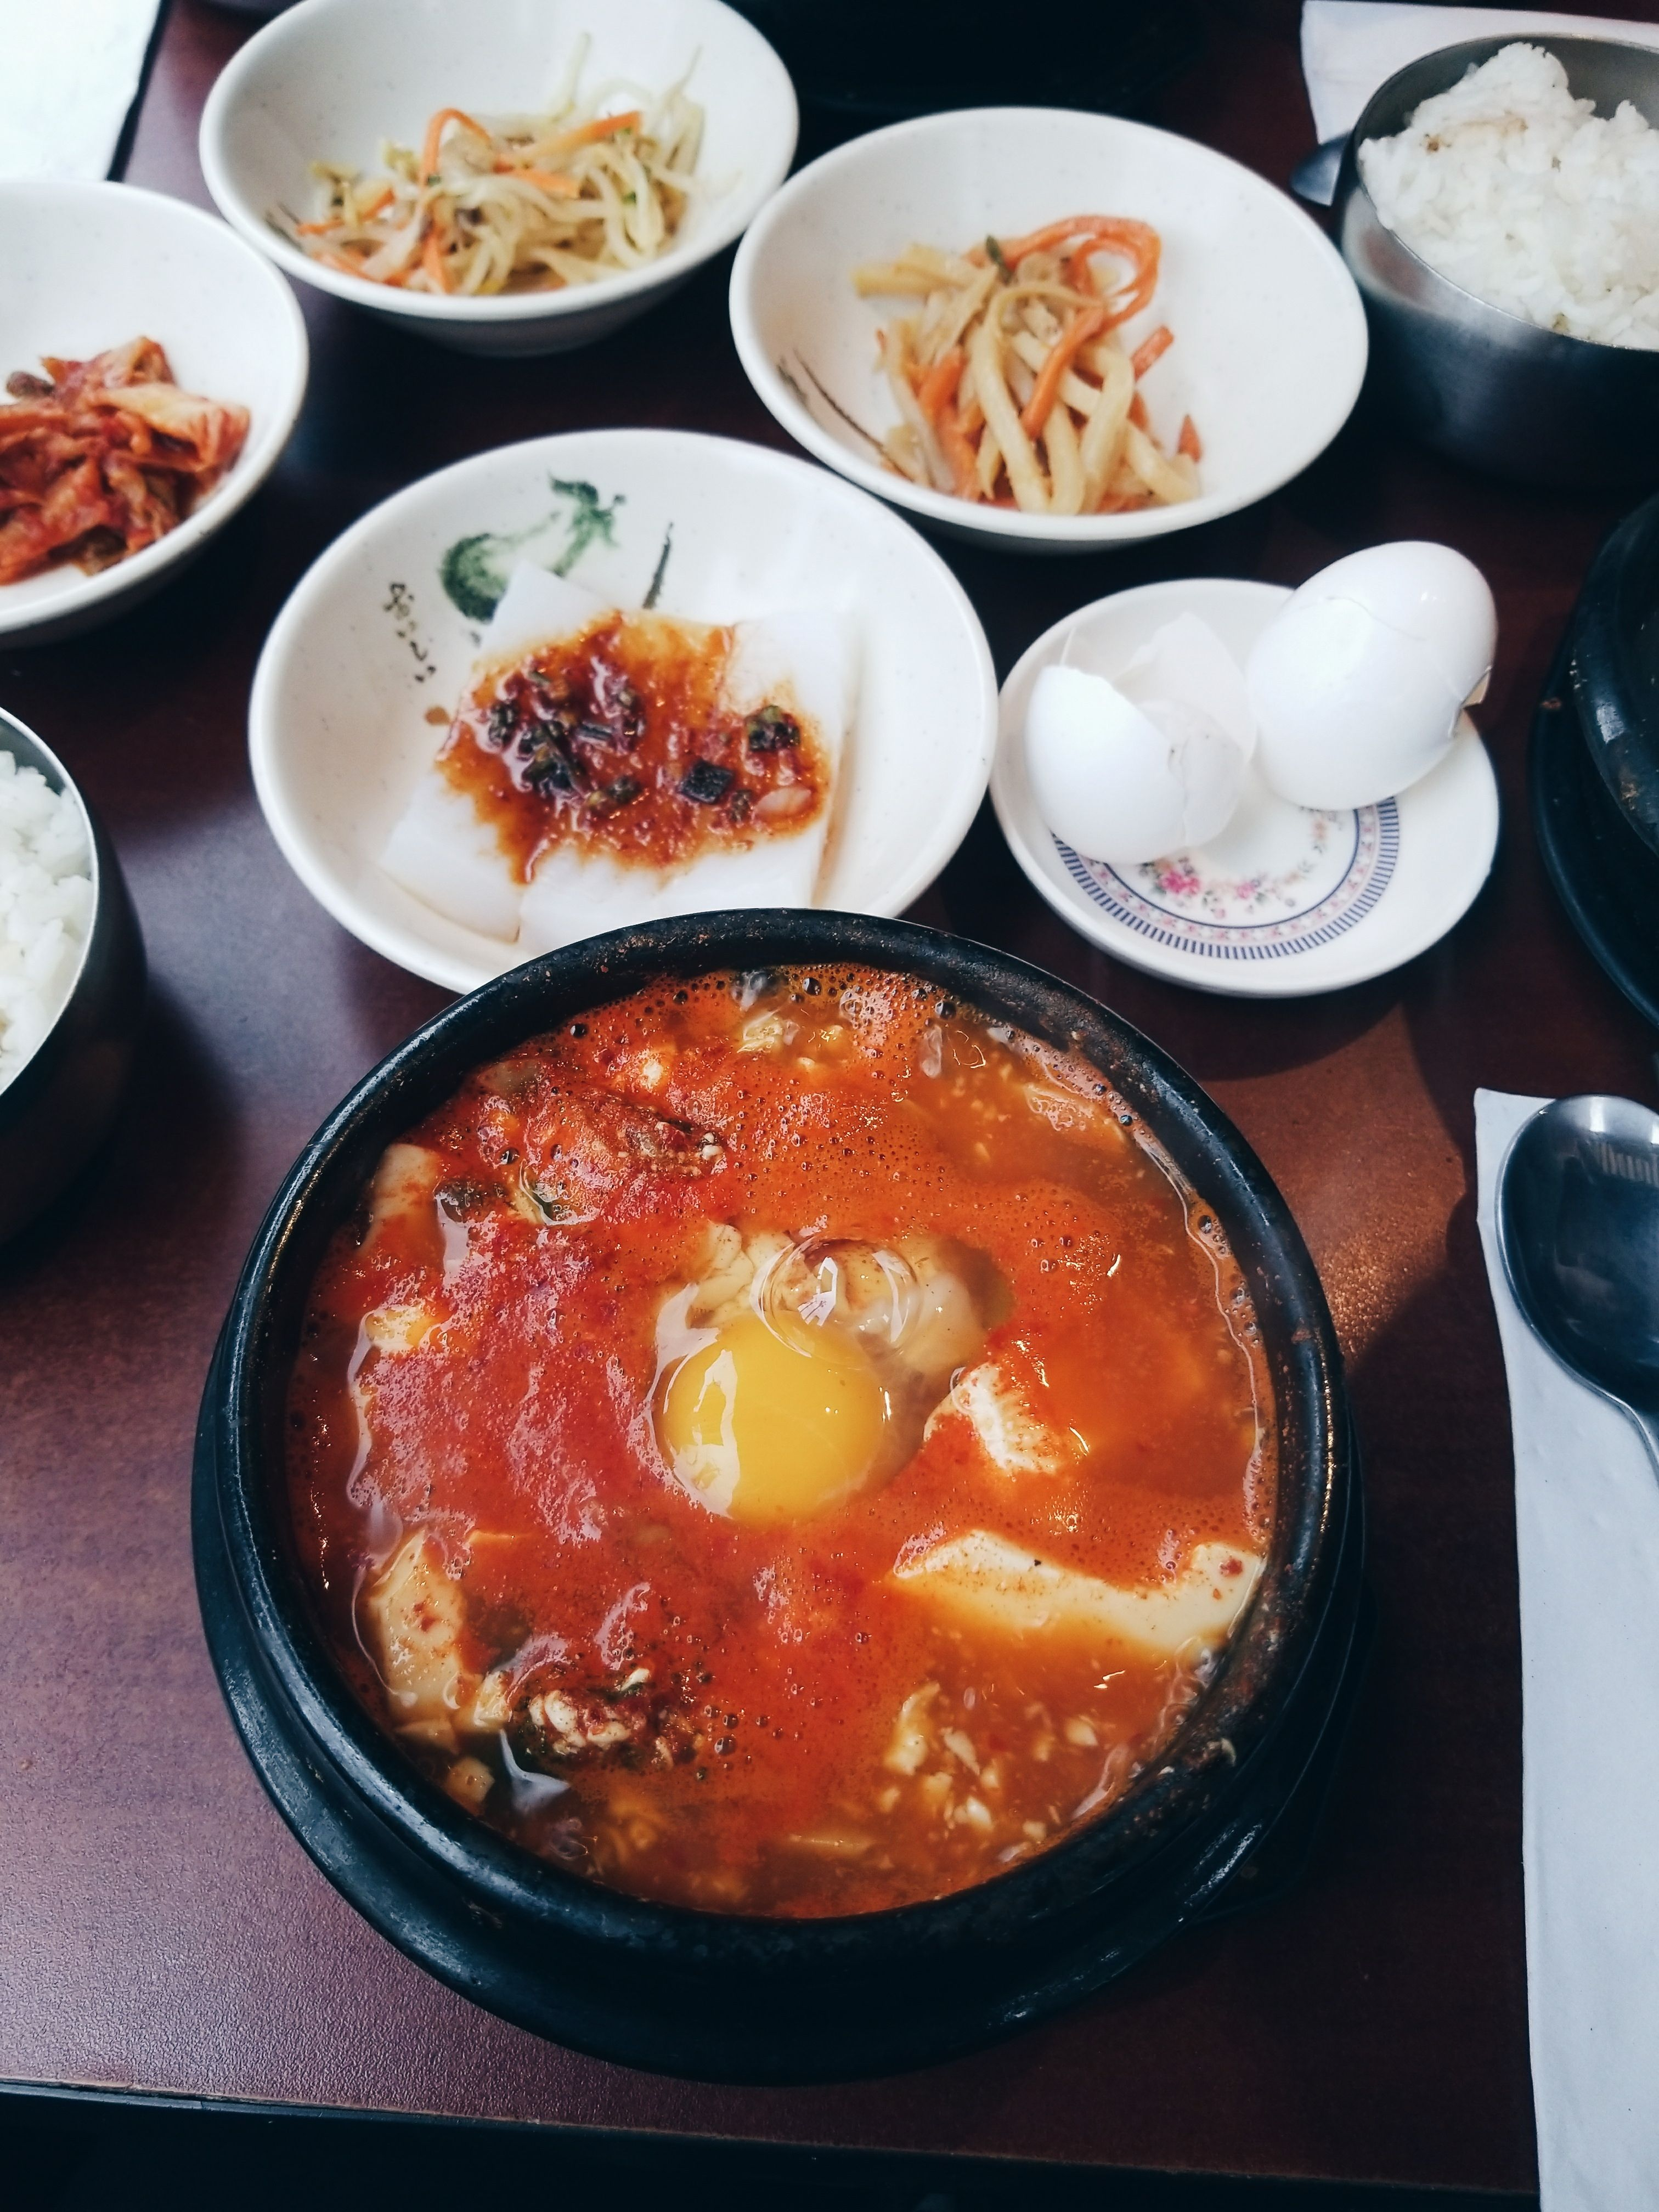 [I ate] Korean Tofu Stew (soondubu) - comes with a raw egg to crack directly in the bubbling hot bowl.